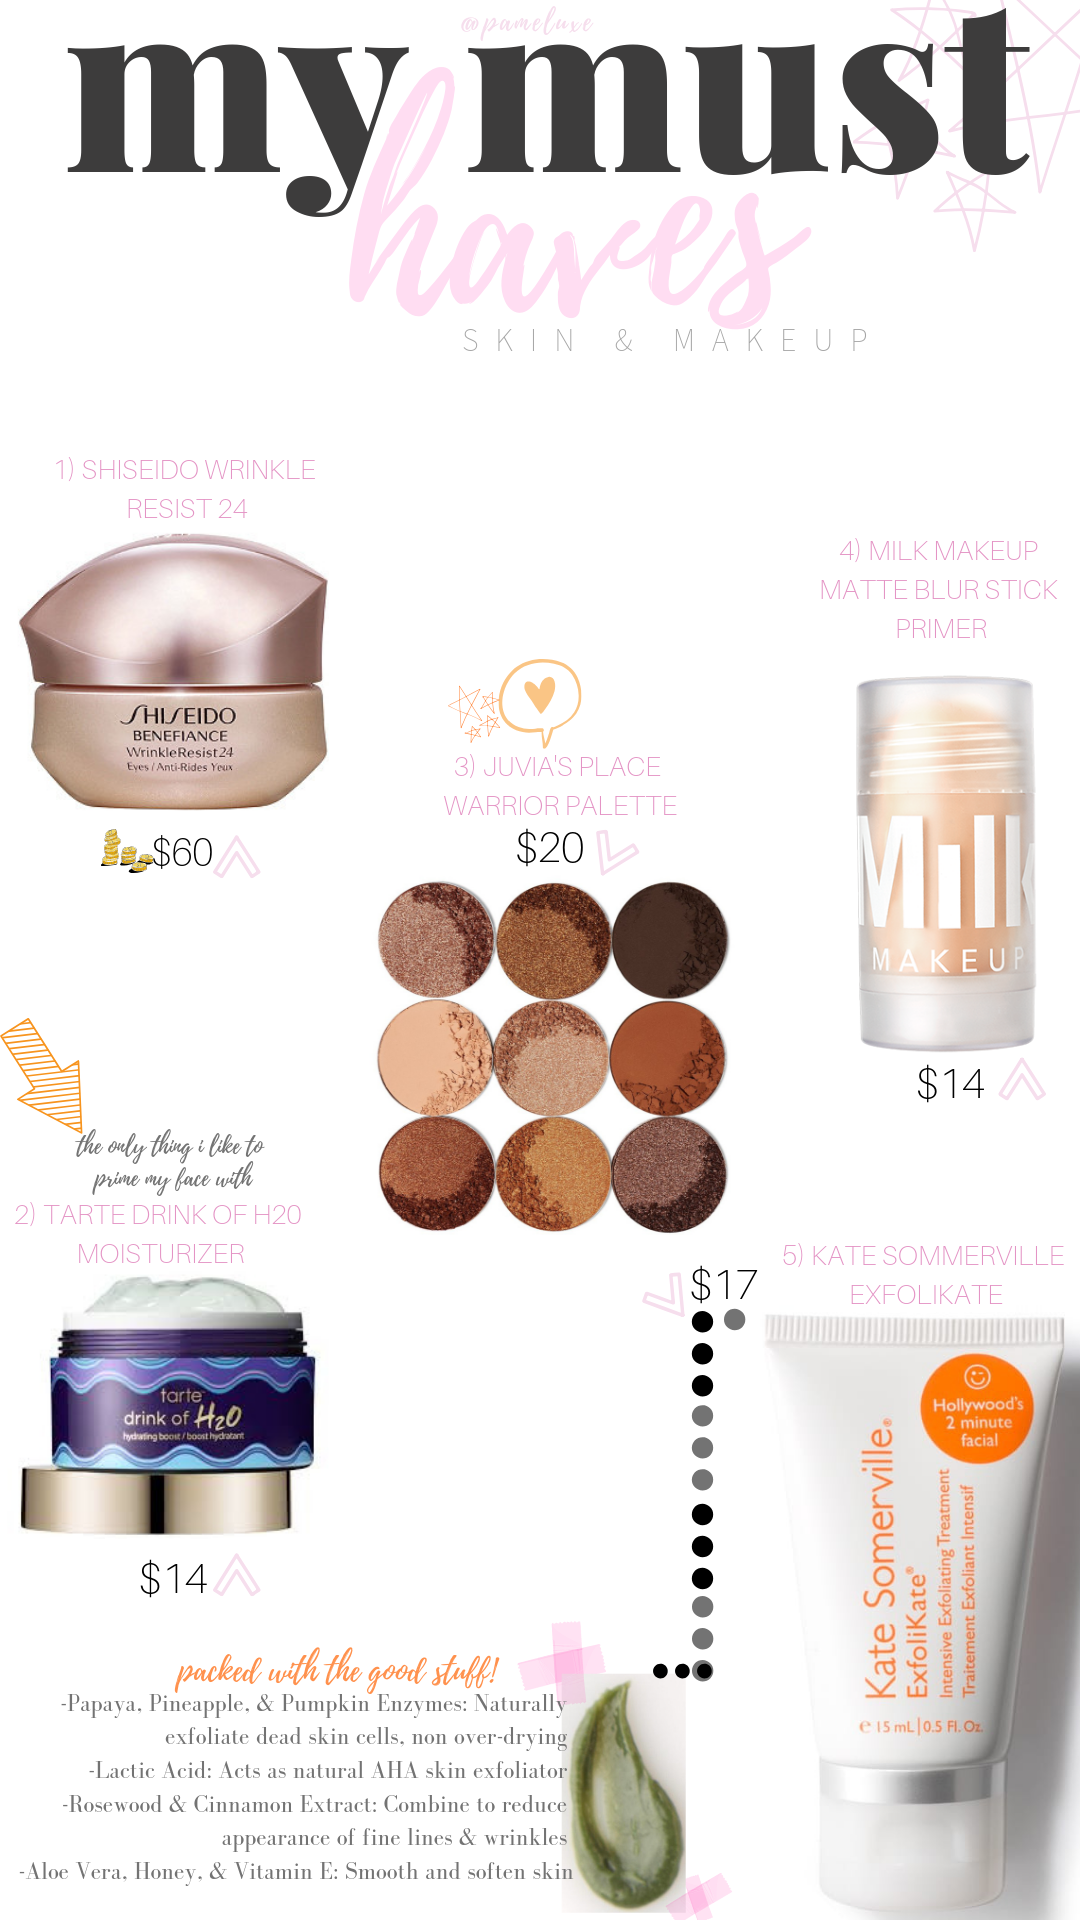 BEST SKINCARE PRODUCTS FOR PERFECT MAKEUP